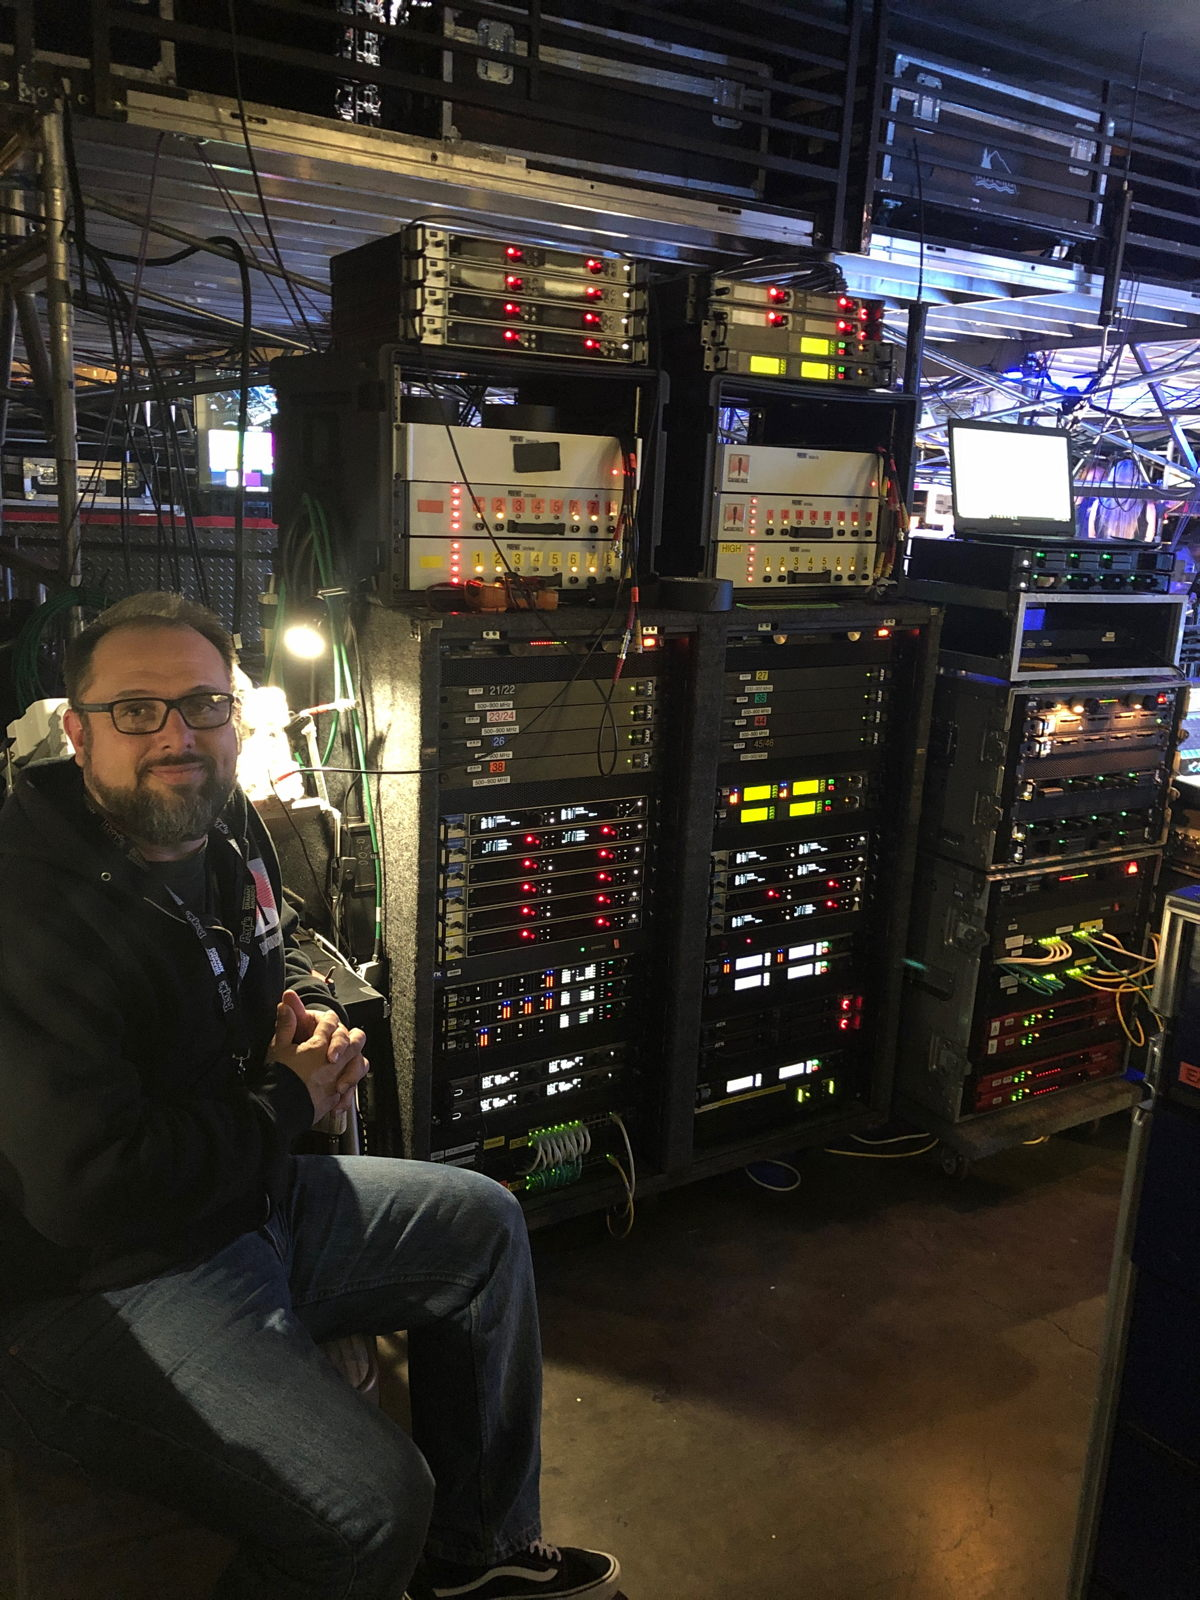 Stephen Vaughn, Coordinator for Soundtronics Wireless, ensured that all the wireless microphones and in-ear monitors worked in harmony for the duration of the GRAMMY Awards